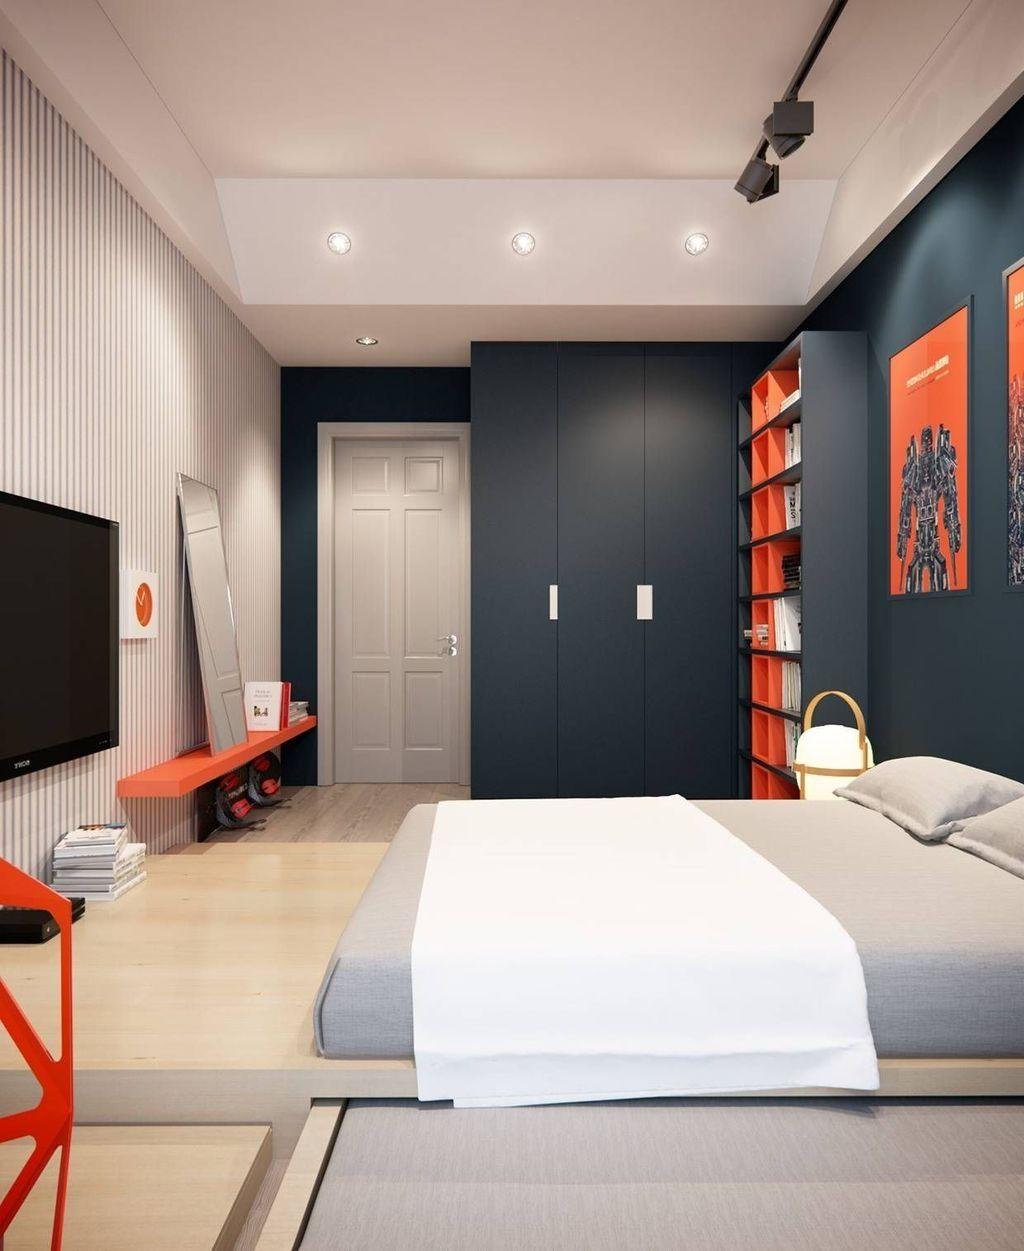 20 Elegant Boys Bedroom Ideas That You Must Try Boy Bedroom Design Modern Bedroom Design Bedroom Interior